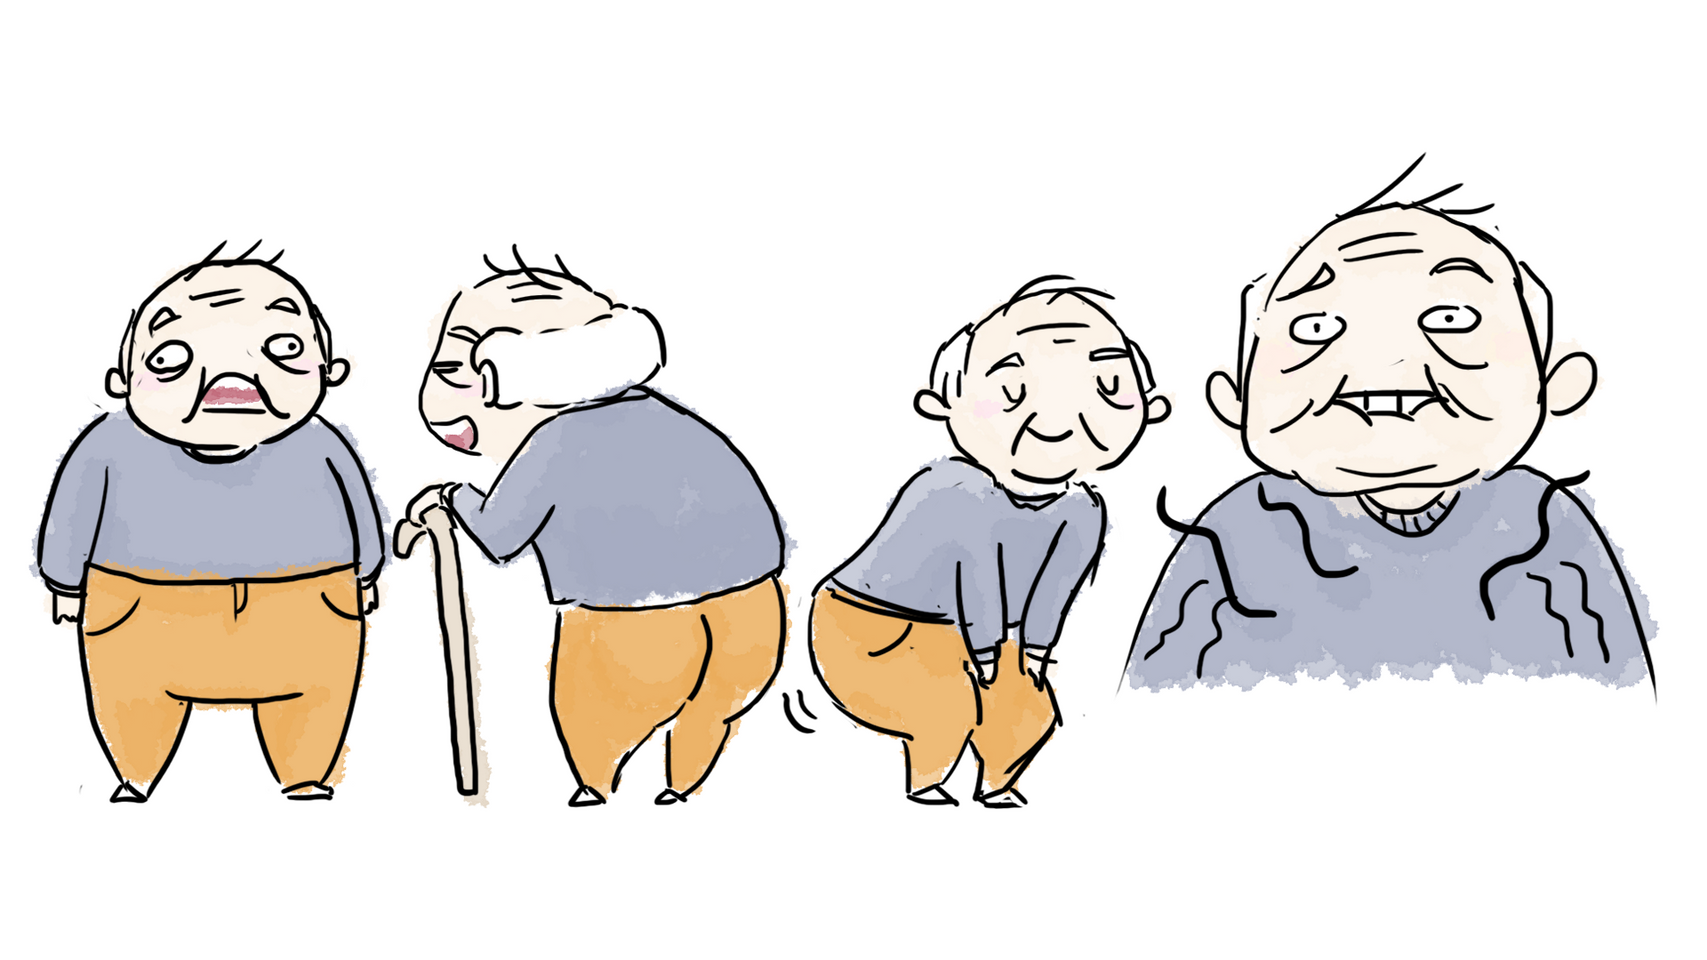 Grandpa for 'Tip of the Tongue' Short